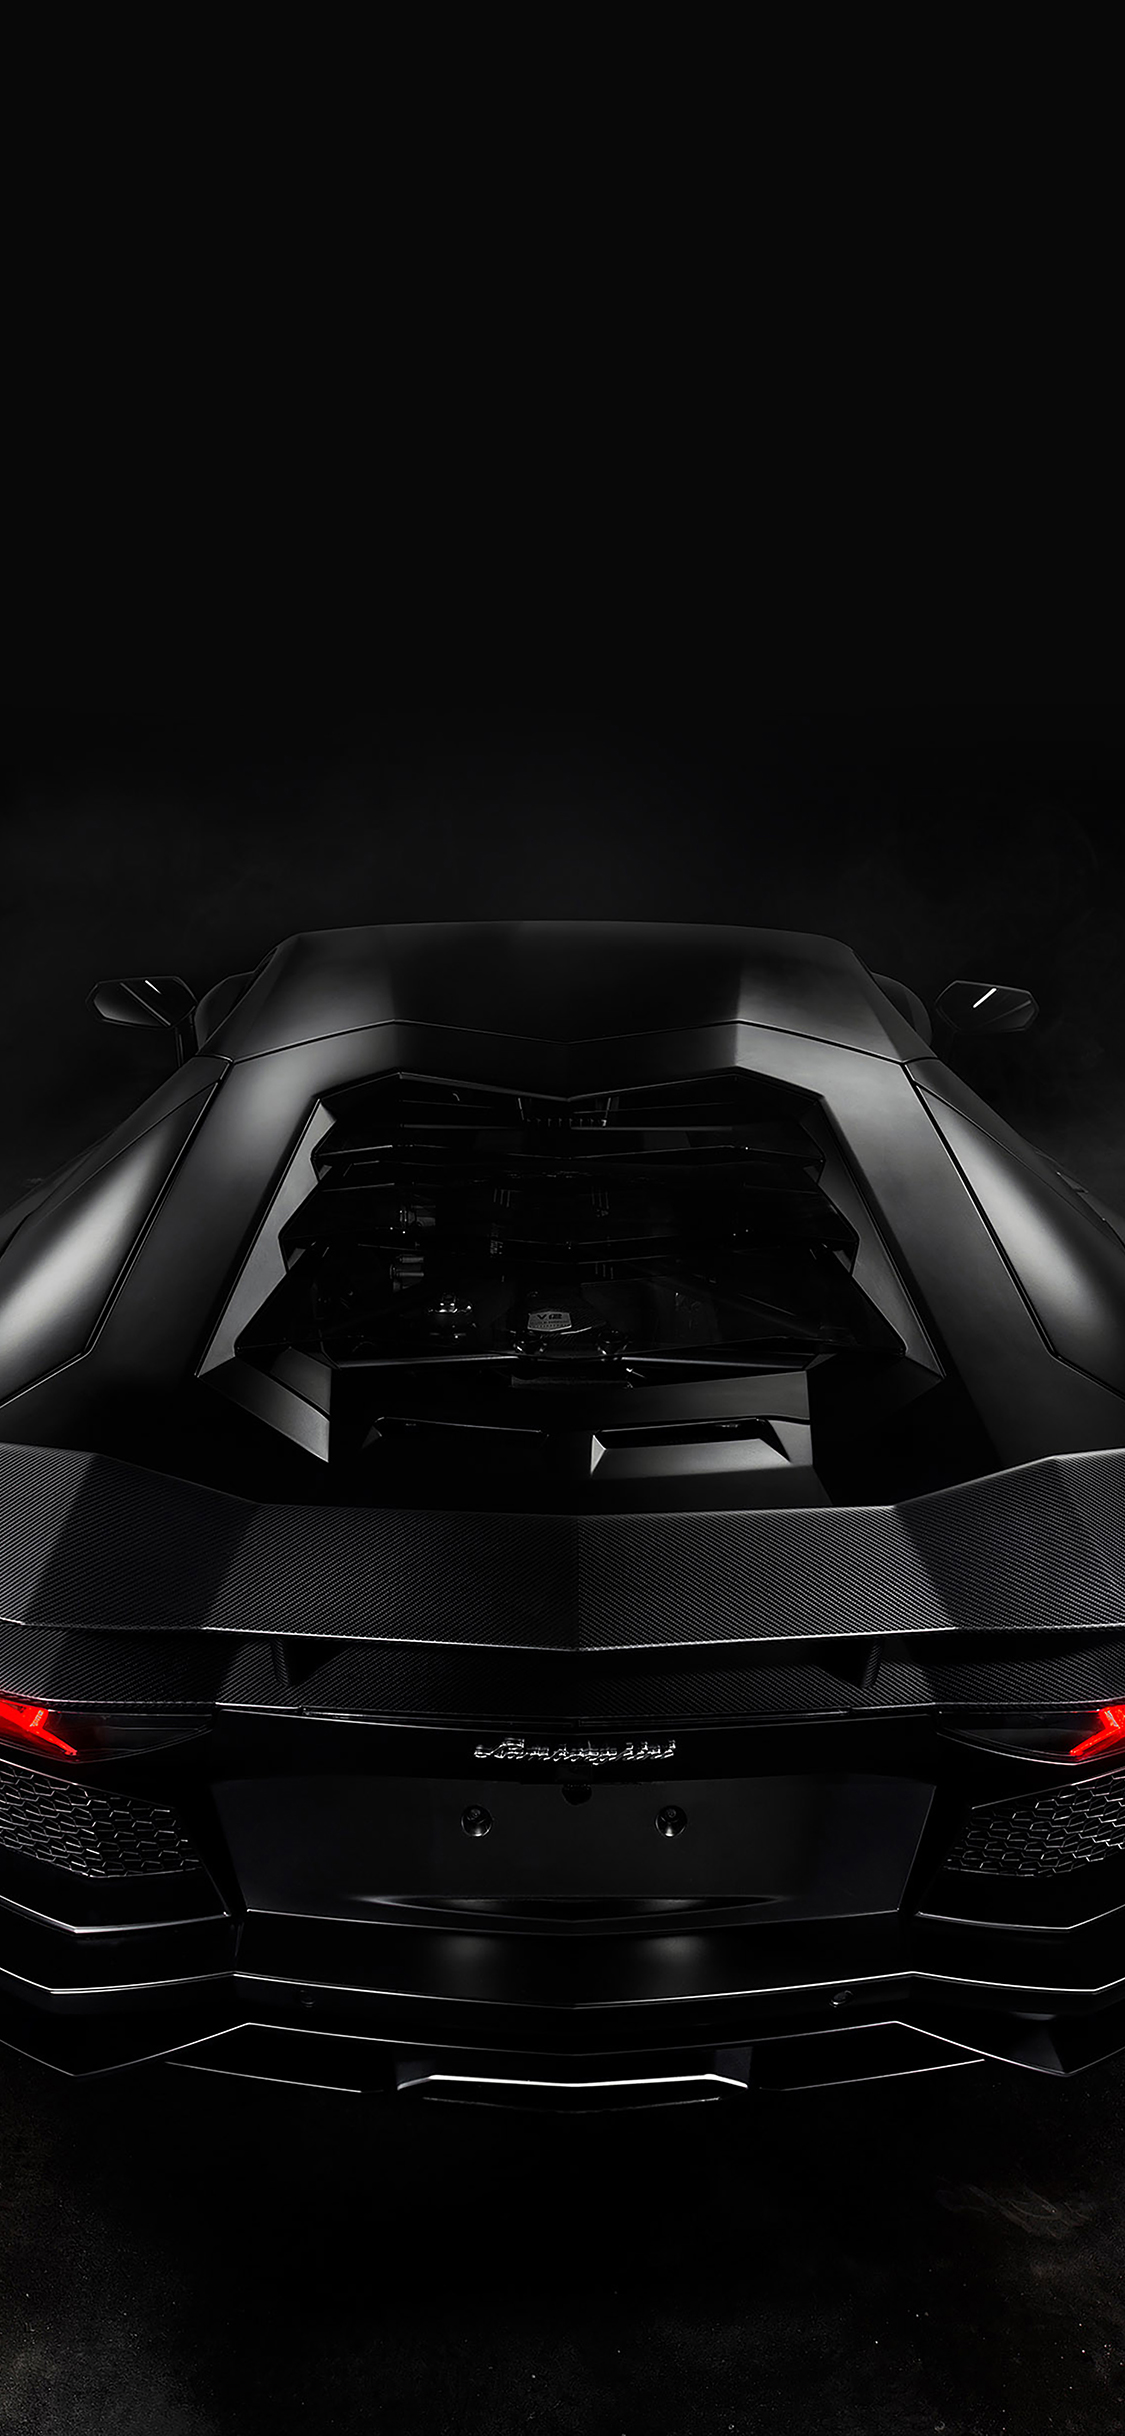 Iphonepapers Aa14 Back Of Lamorghini Aventador Car Dark Art